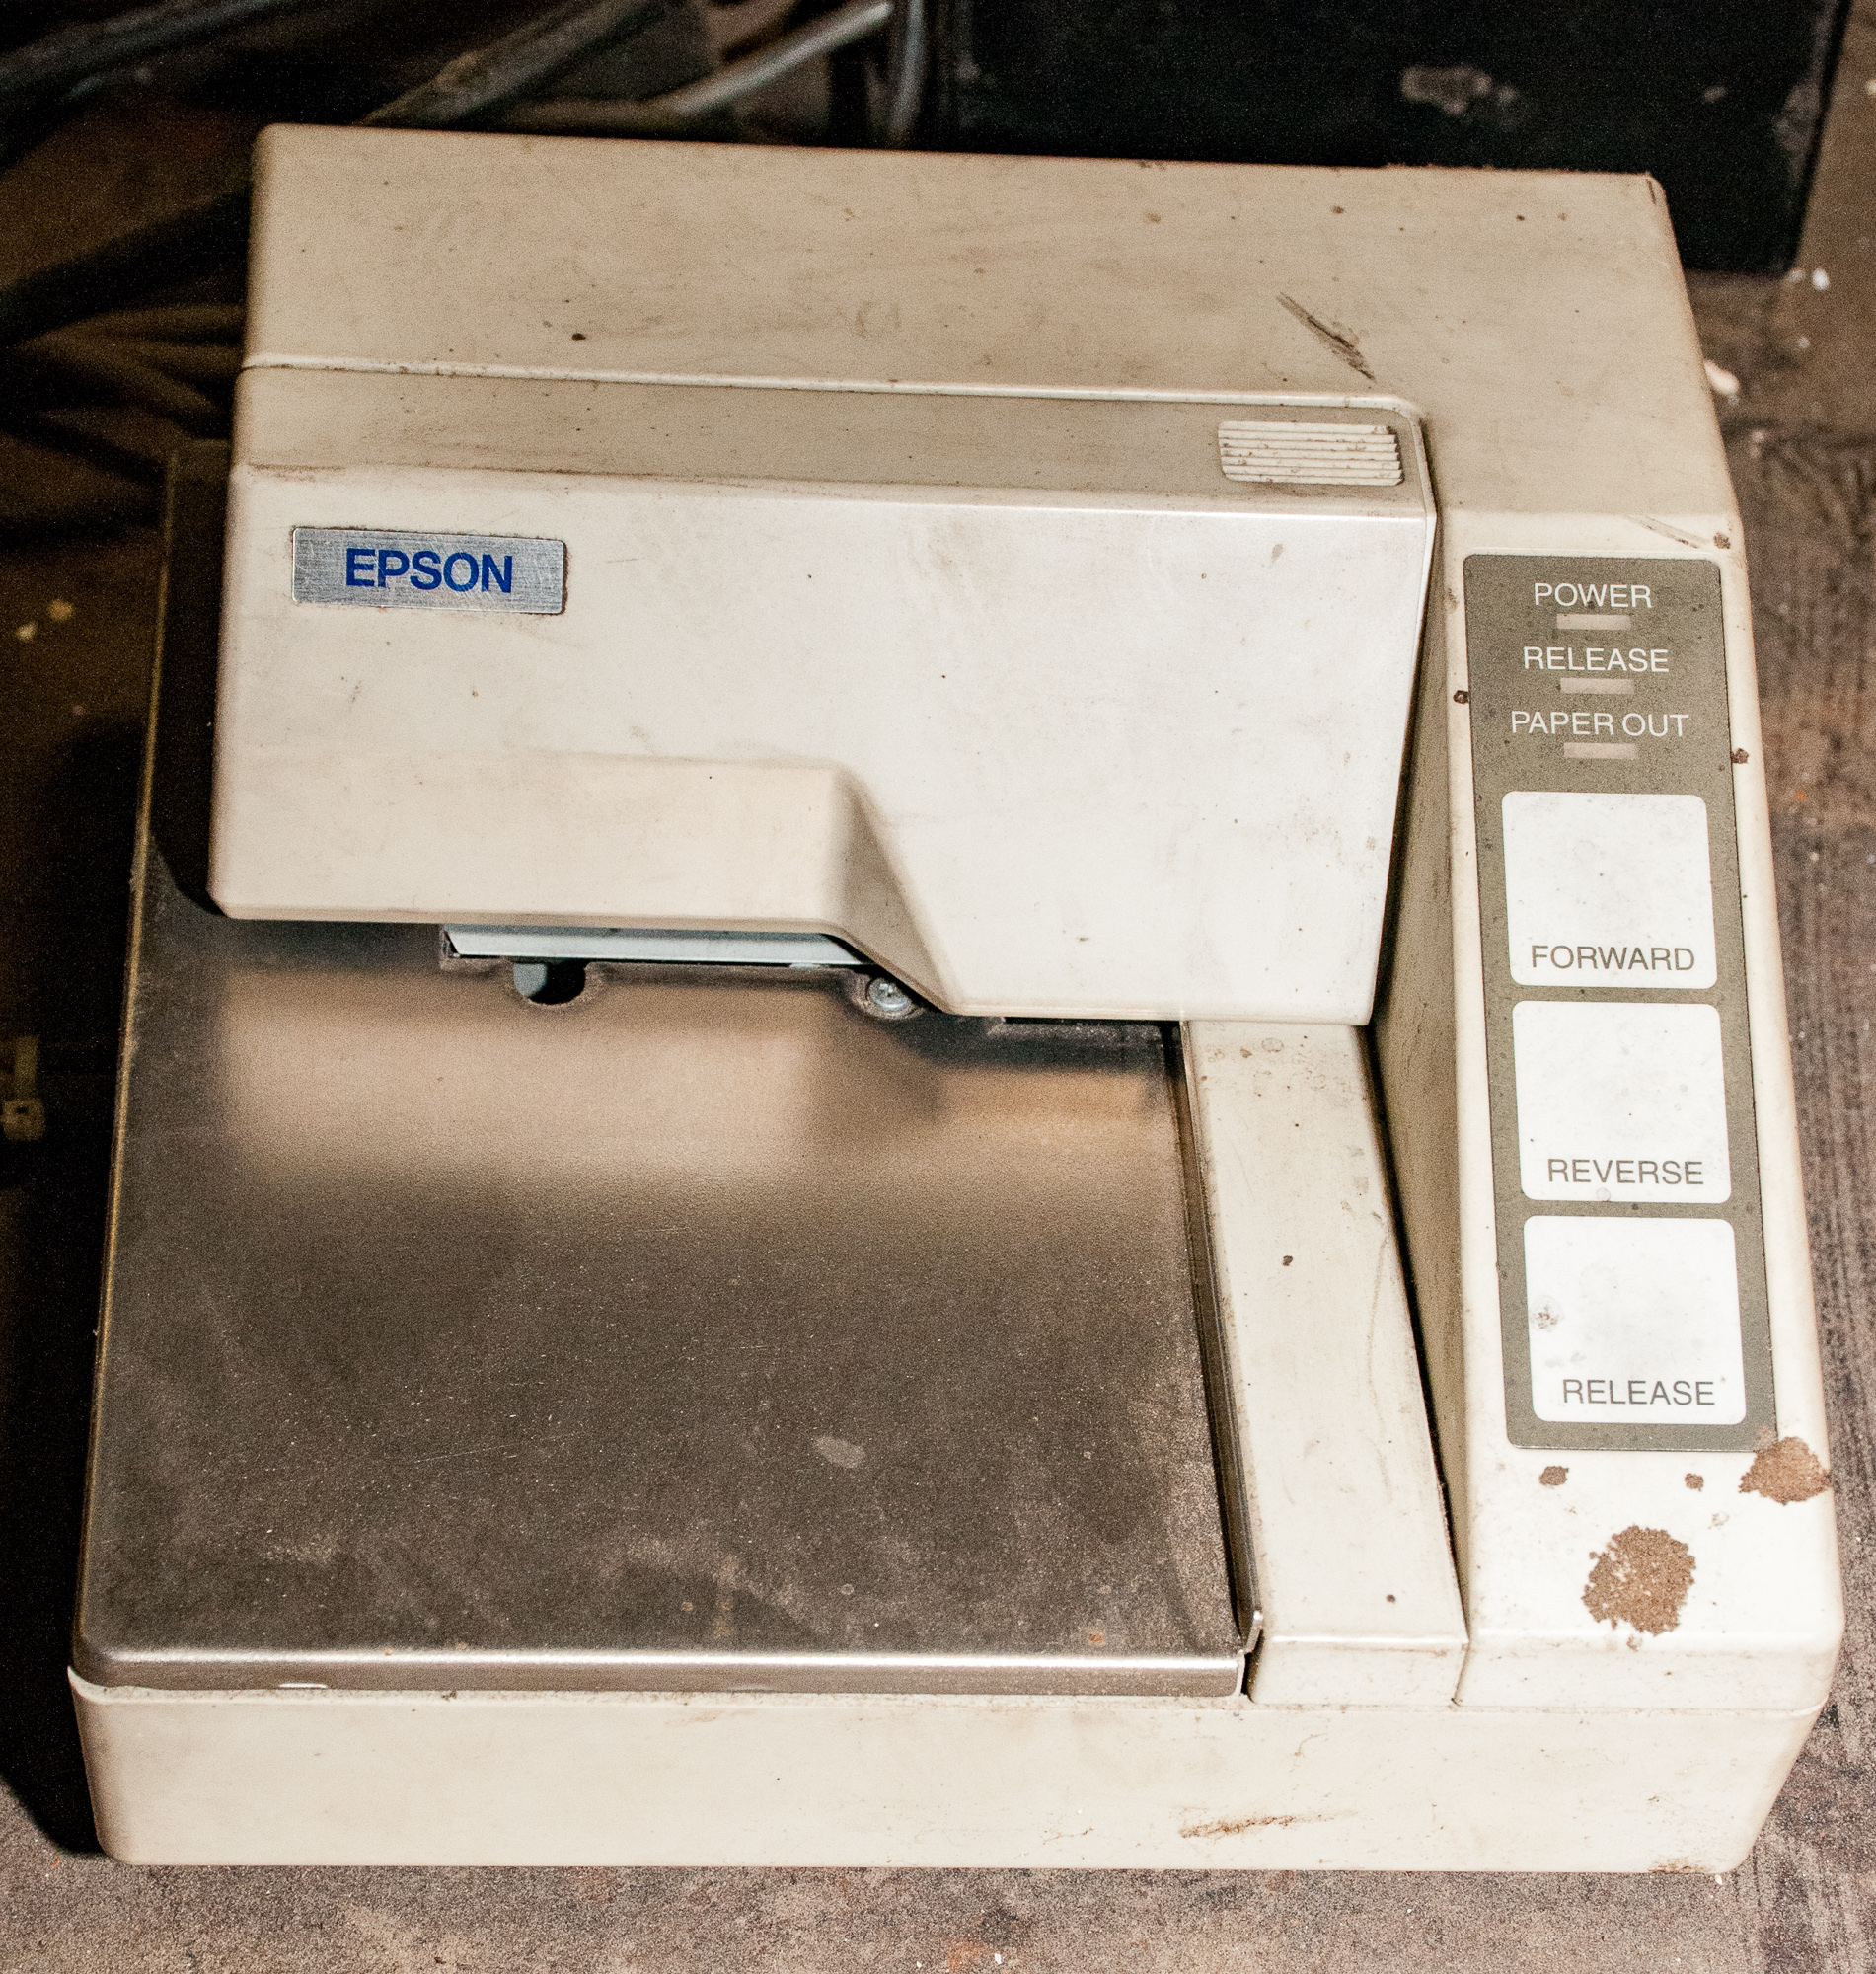 """Scale Table 82 1/2"""" X 107 1/2"""" w/ Fairbanks Readout and Epson Printer, 10,000 lb. Cap. - Image 4 of 5"""